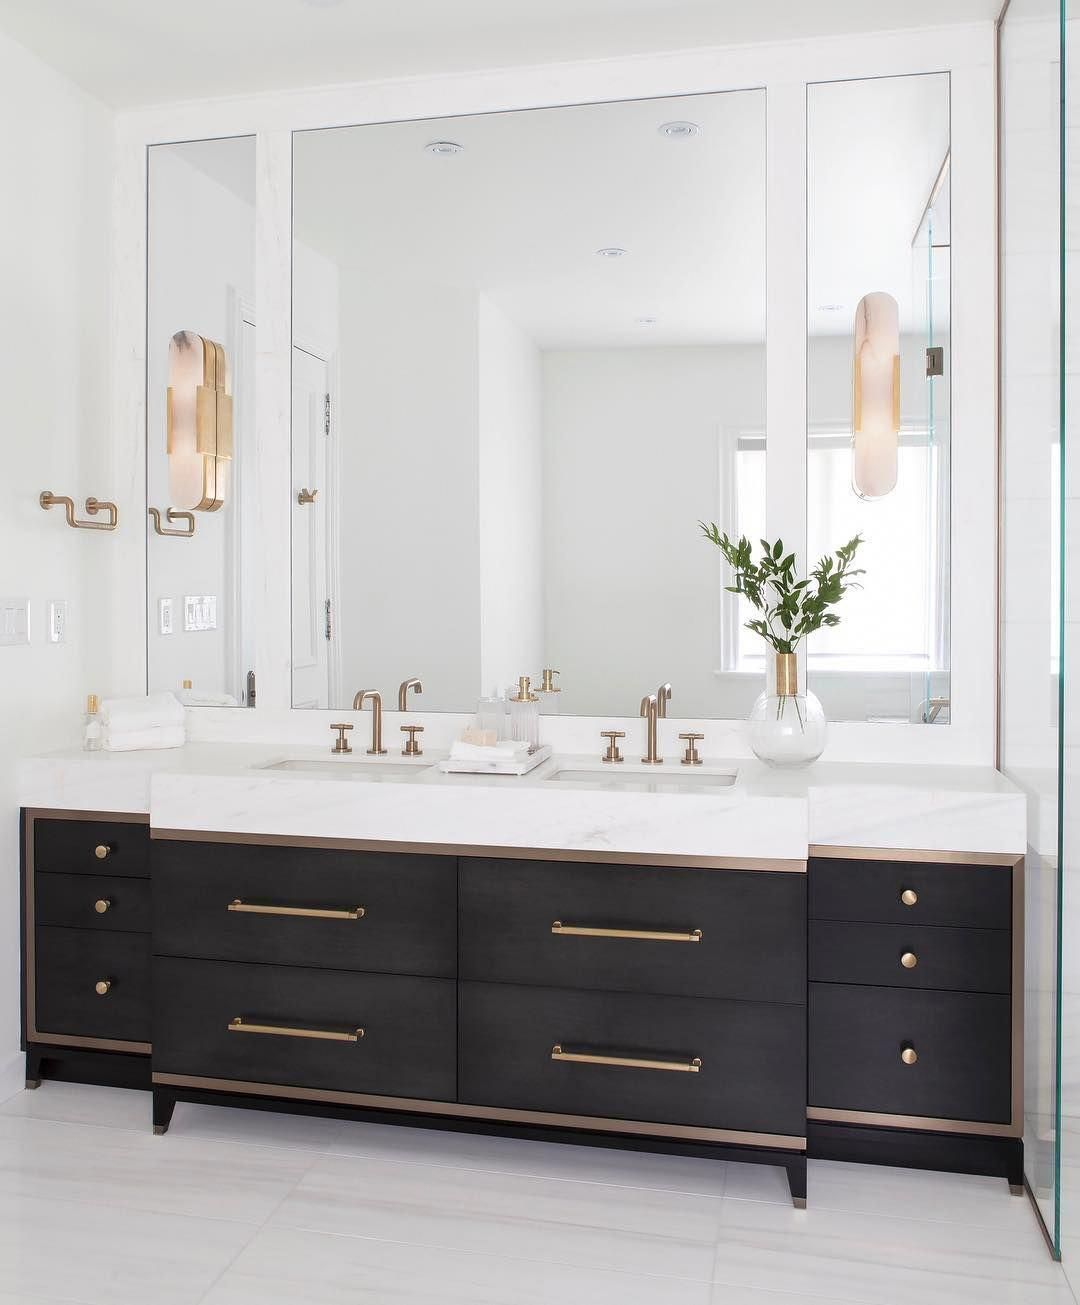 new decor trends for your bathroom drawer handles on vanity for bathroom id=95600